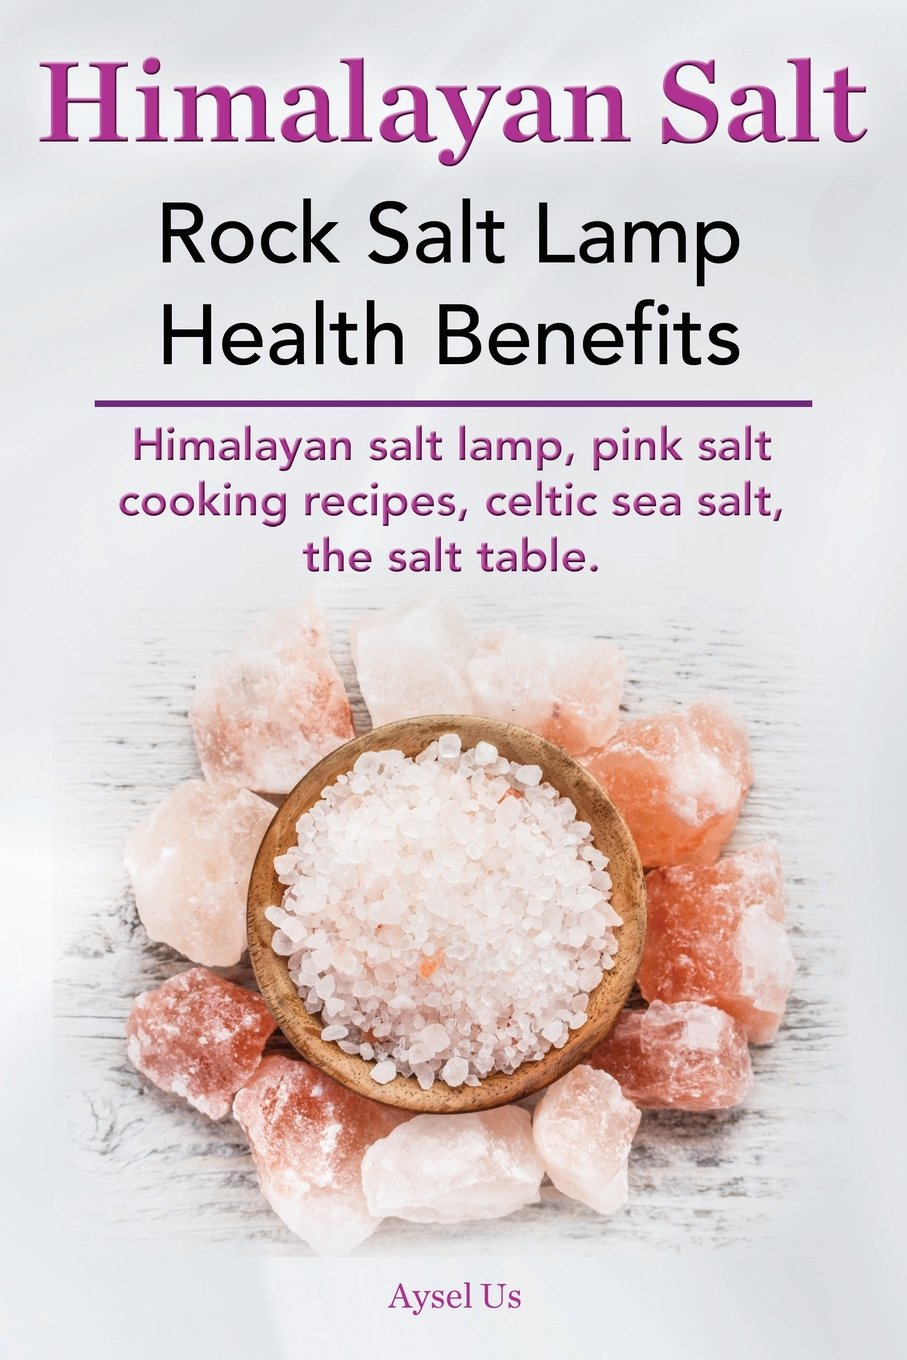 Salt lamps health benefits - Himalayan Salt Rock Salt Lamp Health Benefits Himalayan Salt Lamp Pink Salt Cooking Recipes Celtic Sea Salt The Salt Table